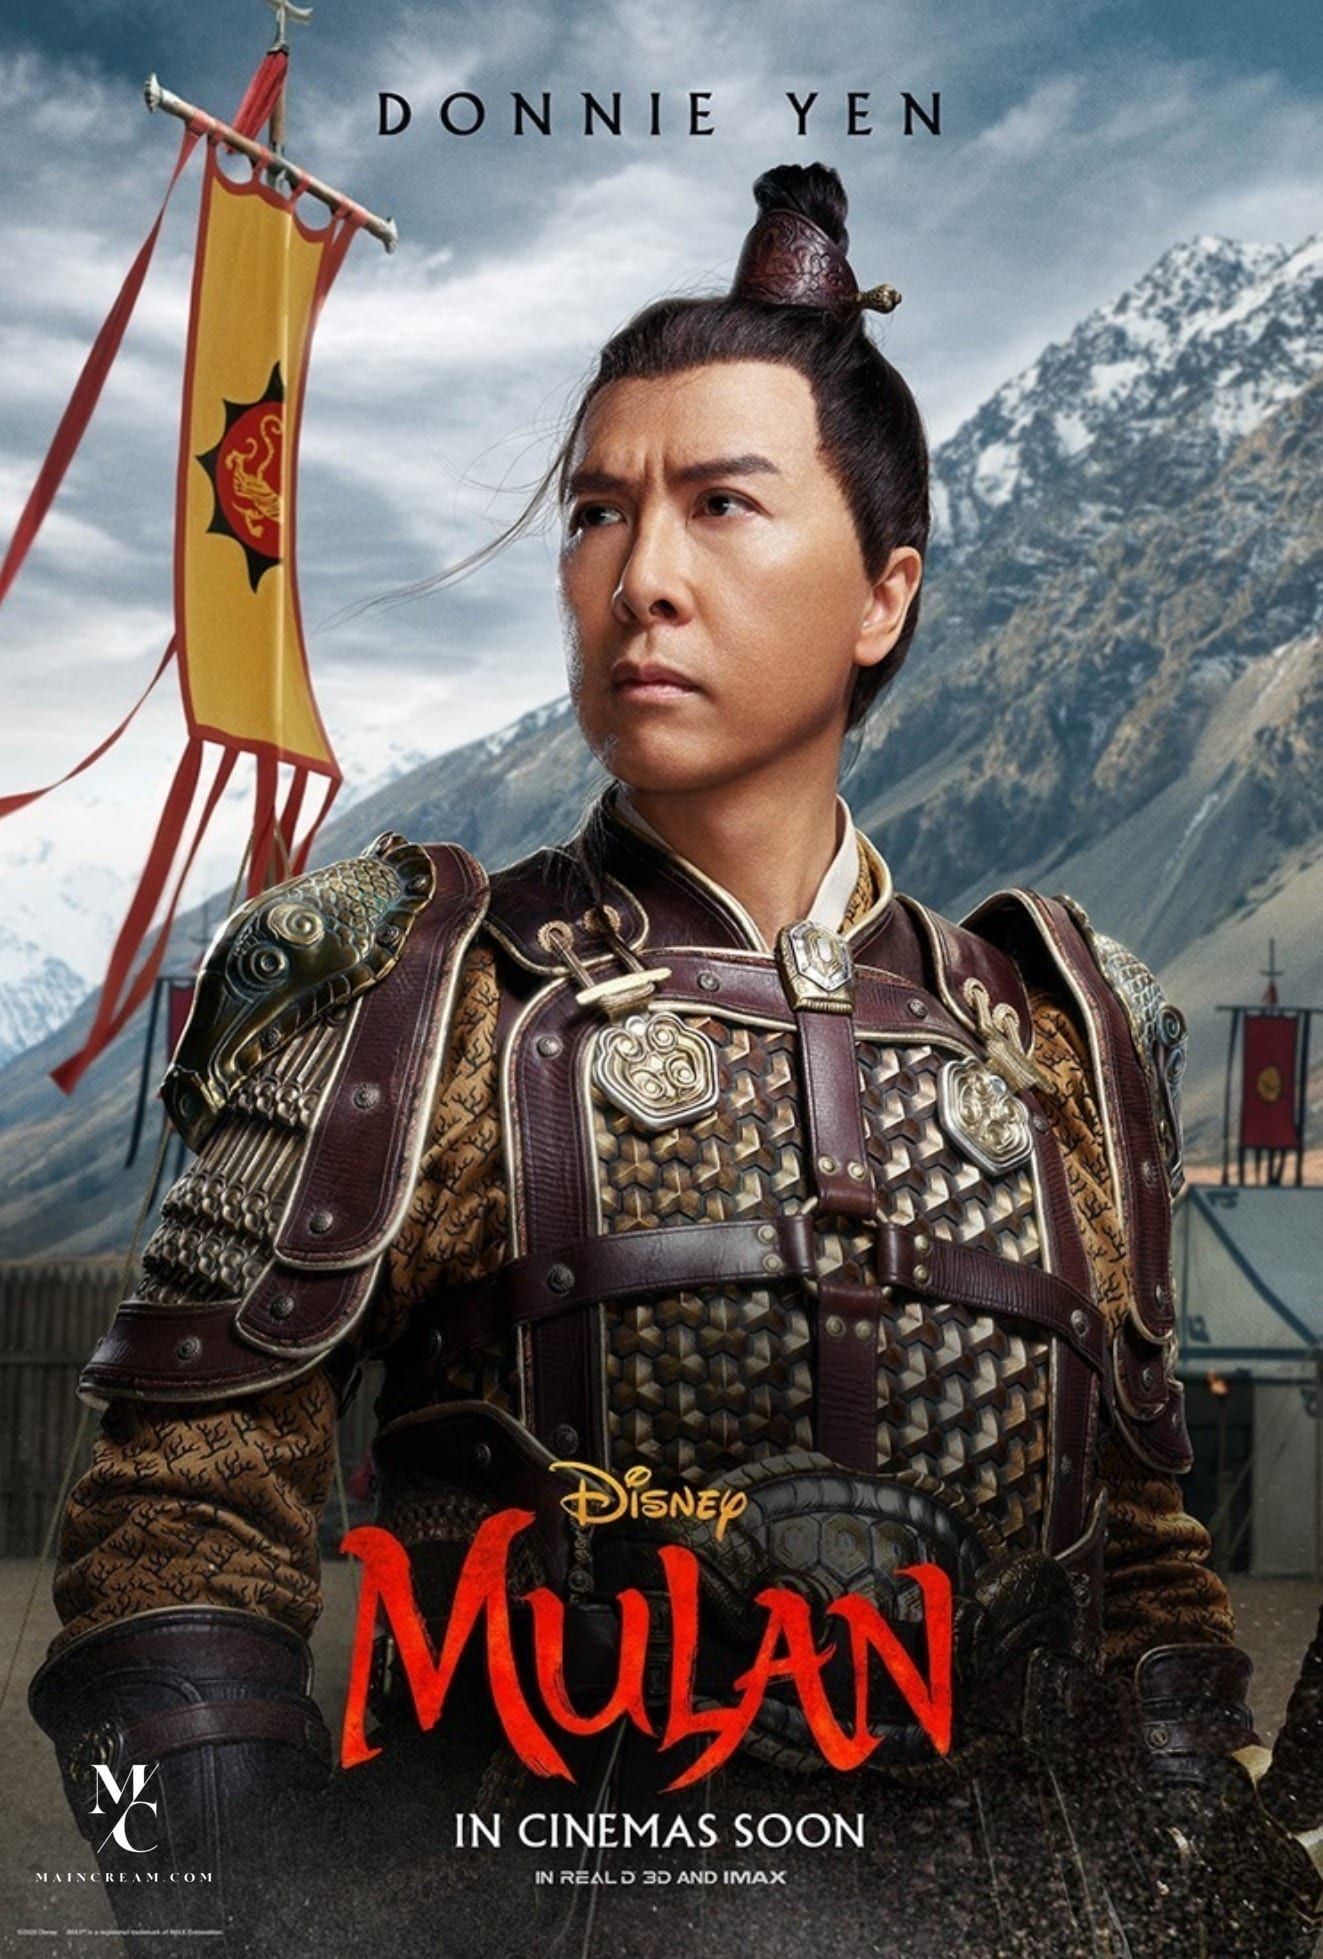 Disney Mulan Character Posters Donnie Yen as Commander Tung